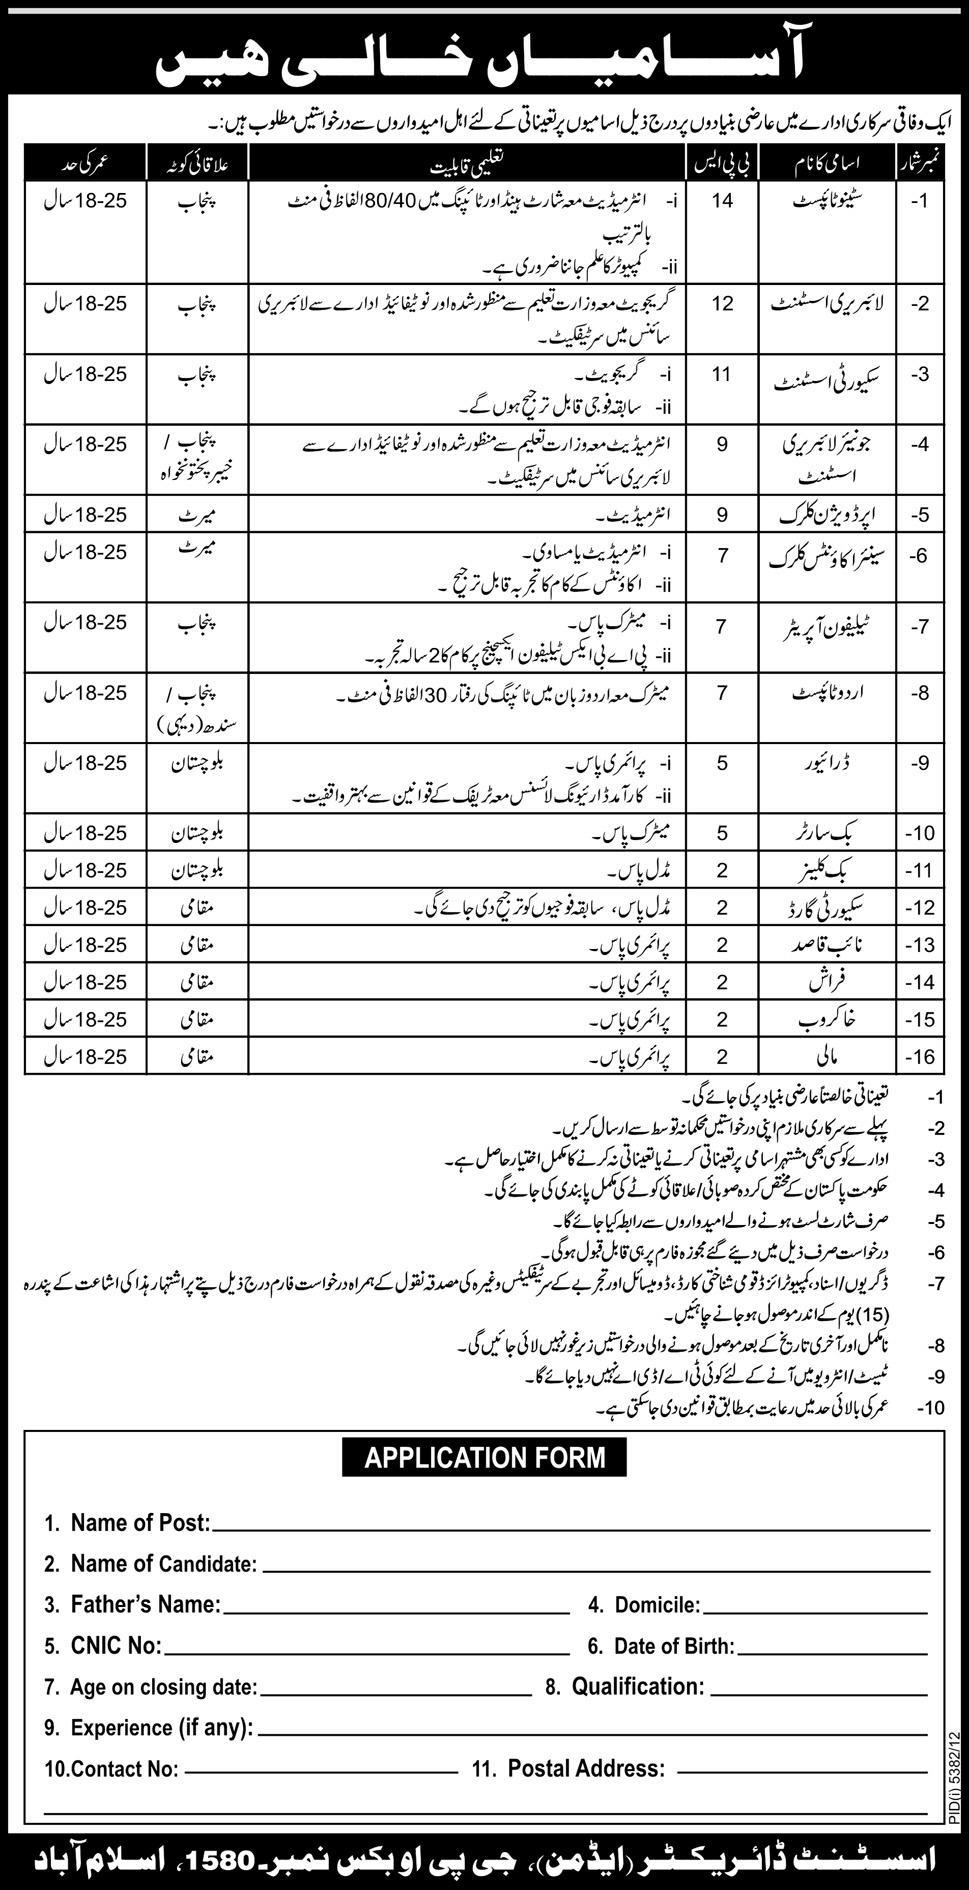 Federal Government Islamabad Jobs in Newspaper Pakistan 2013 Federal Government Islamabad Jobs in Newspaper Pakistan 2013